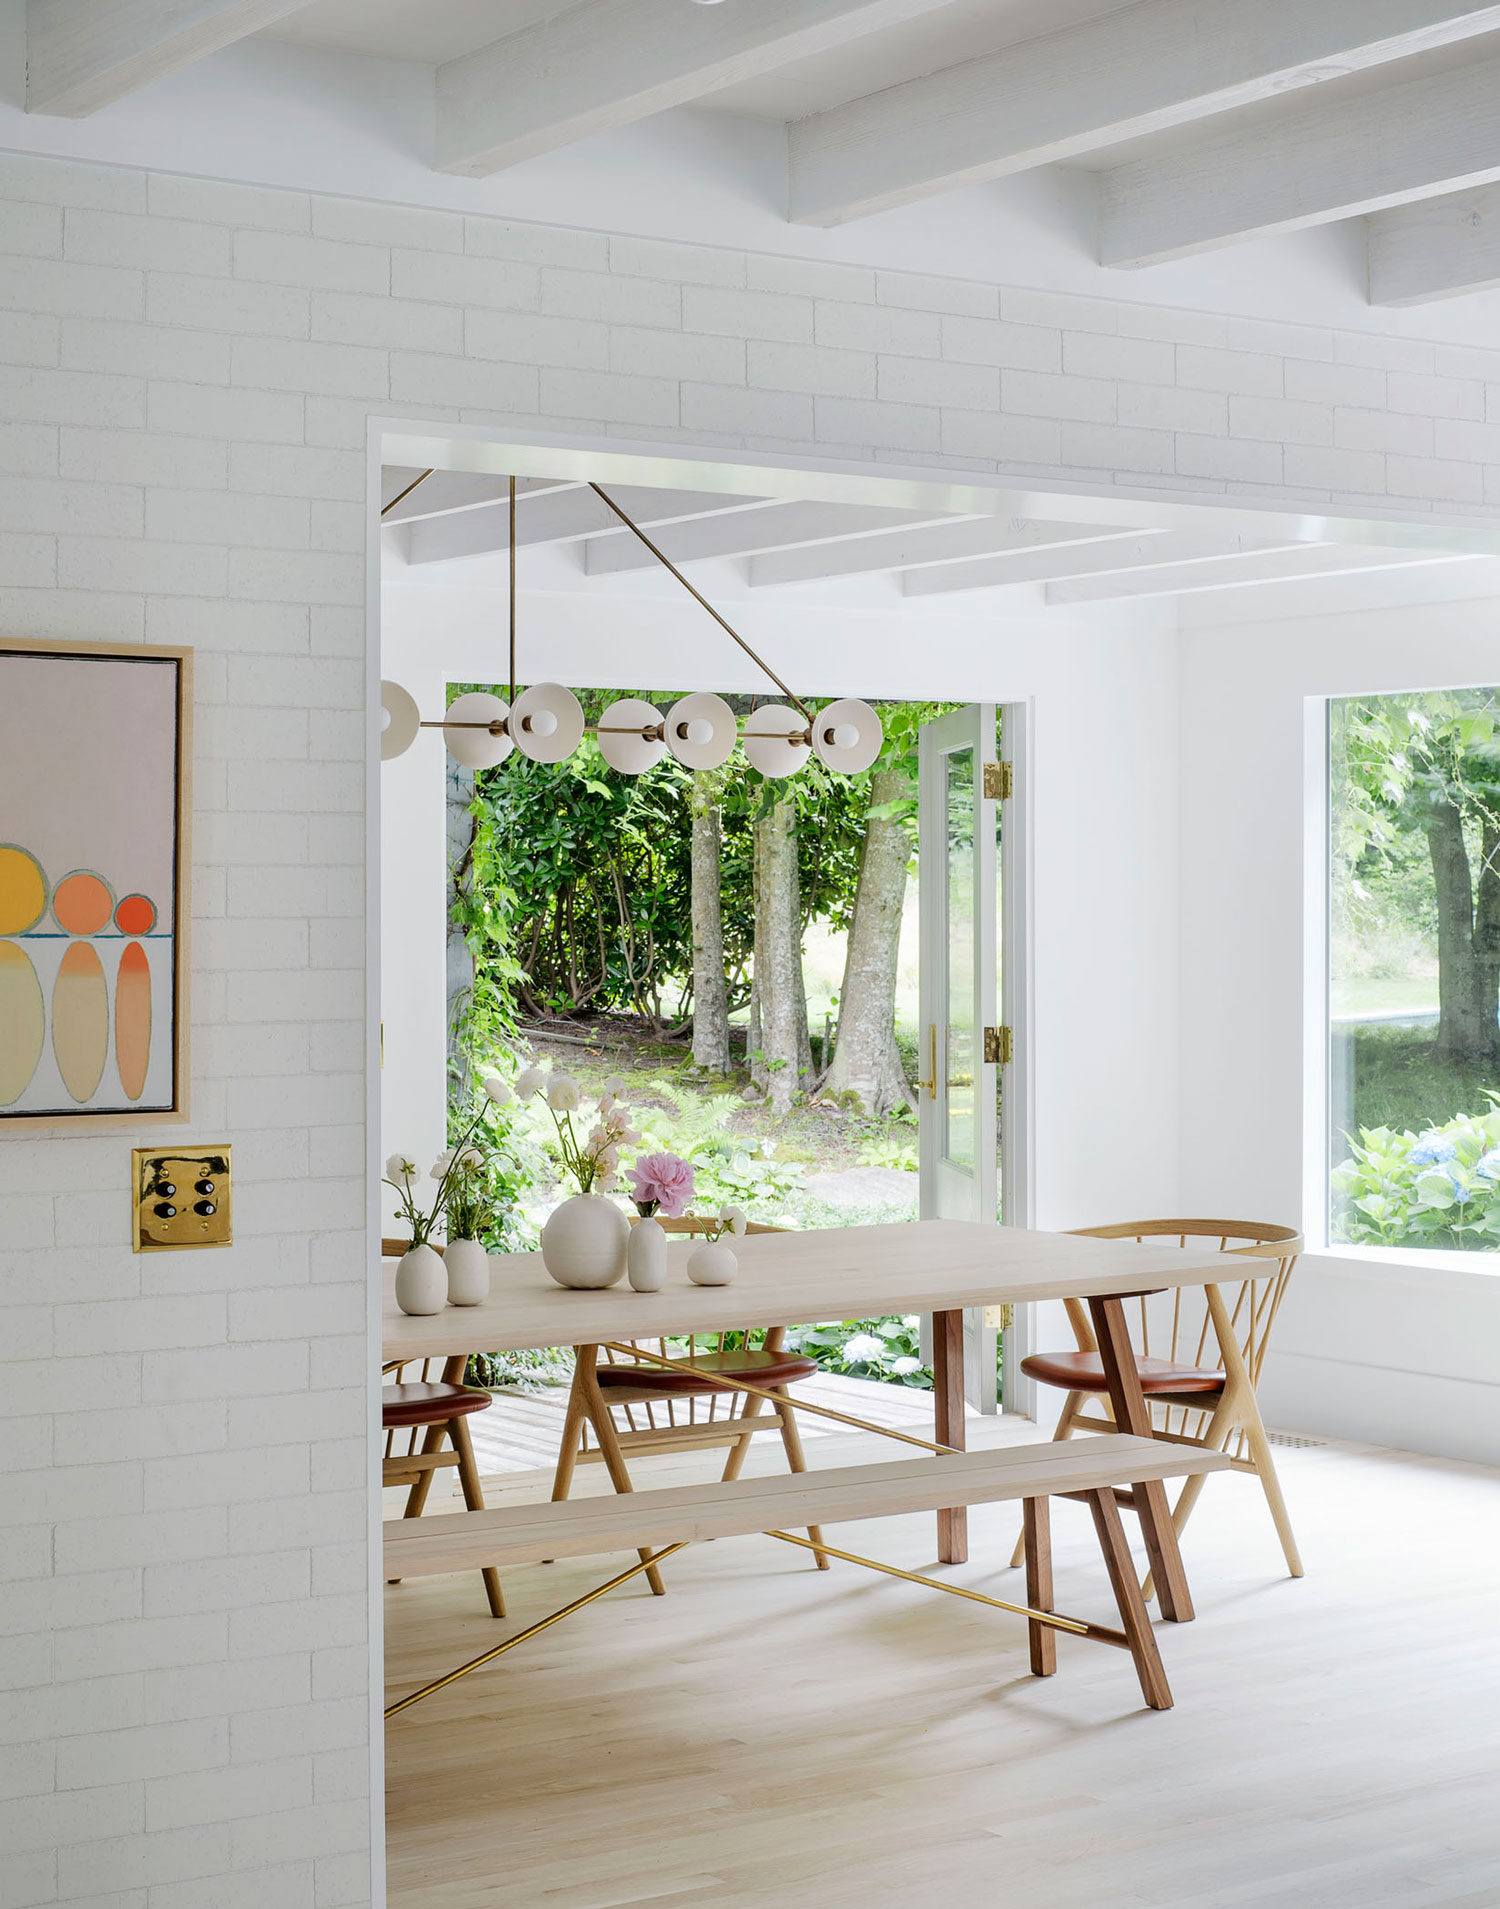 Amagansett-House-by-Jessica-Helgerson-Interior-Design-Yellowtrace-03.jpg